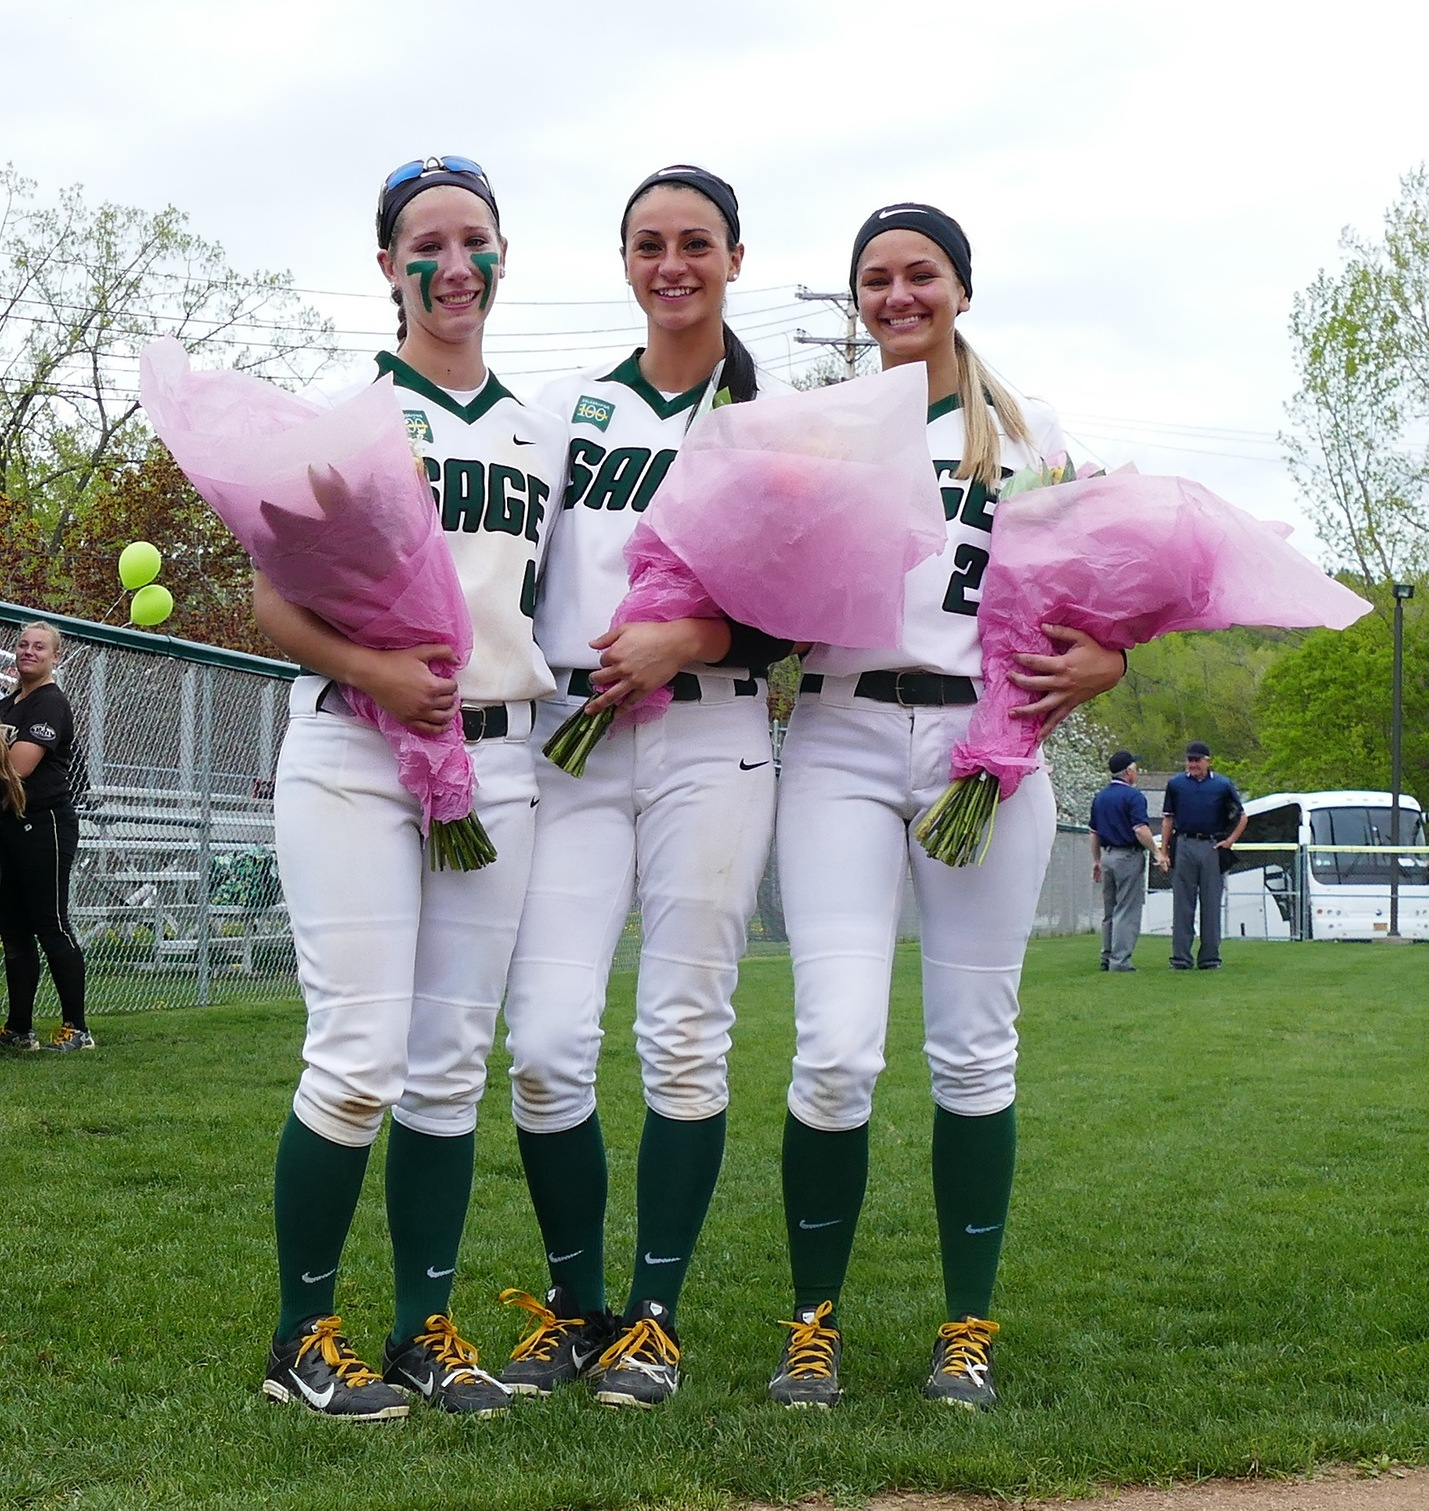 Gator Bats on Fire for Senior Day